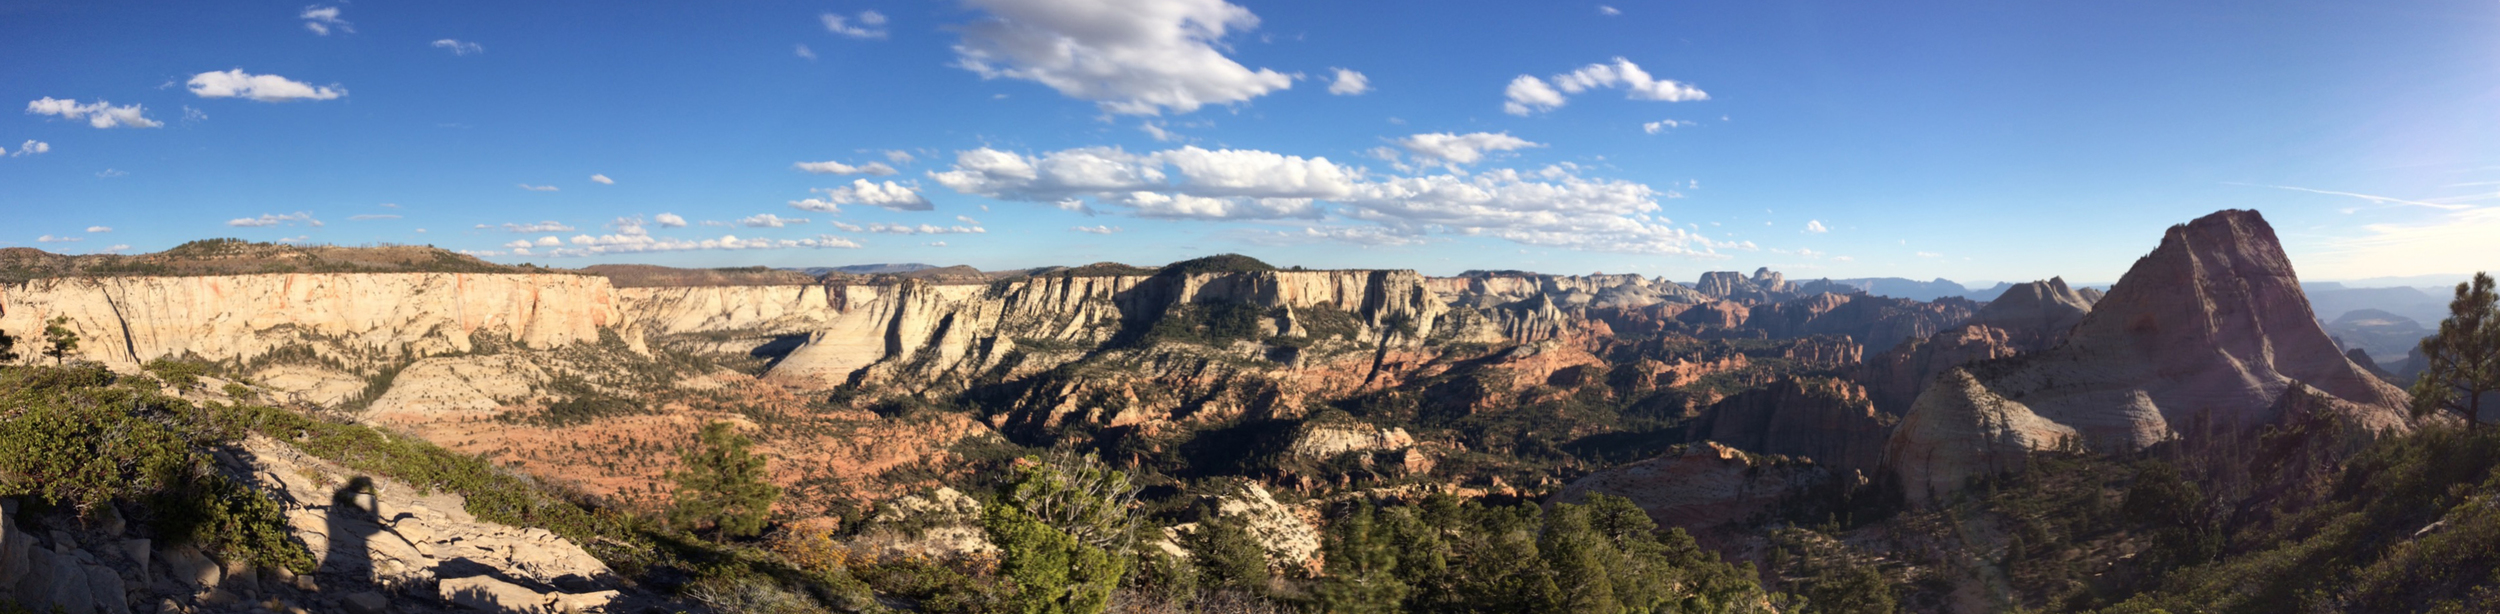 iPhone pano from atop East Northgate Peak.  Zion Canyon is in the distance and somewhere between me and the canyon is Subway.  The prominent peak on the right is the North Guardian Angel and the South Guardian Angel is just beyond that.